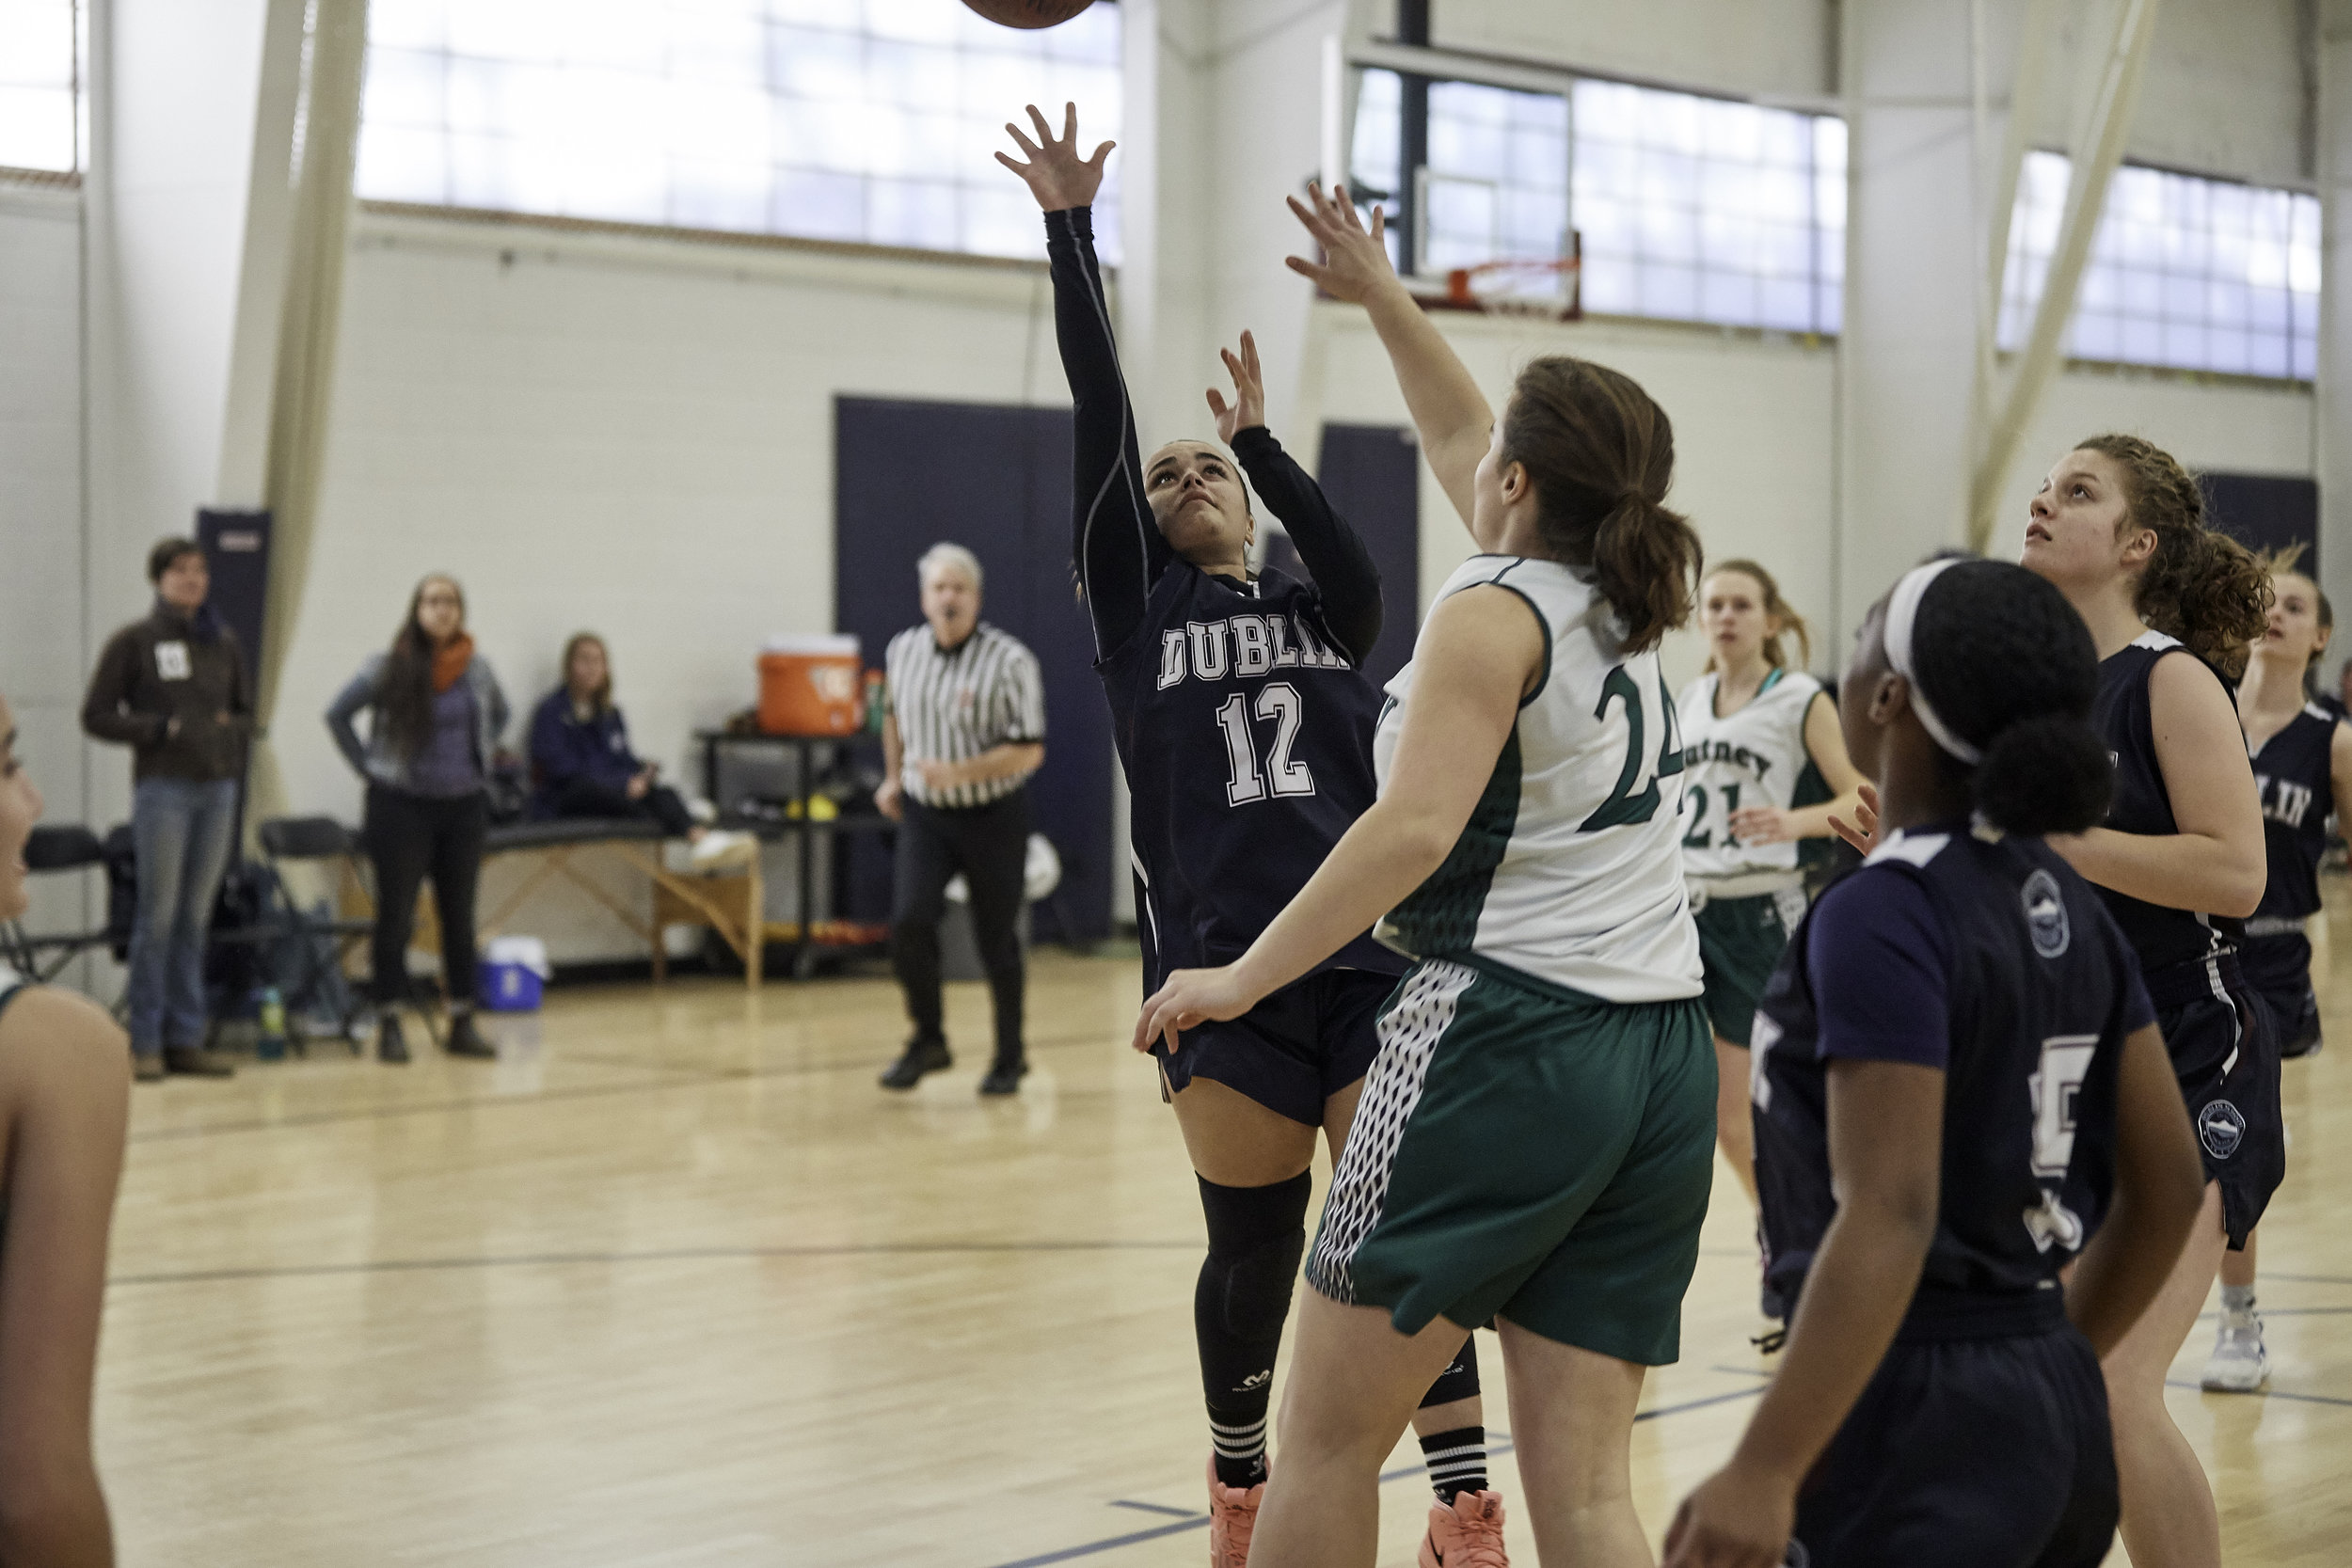 Basketball vs Putney School, February 9, 2019 - 167070.jpg